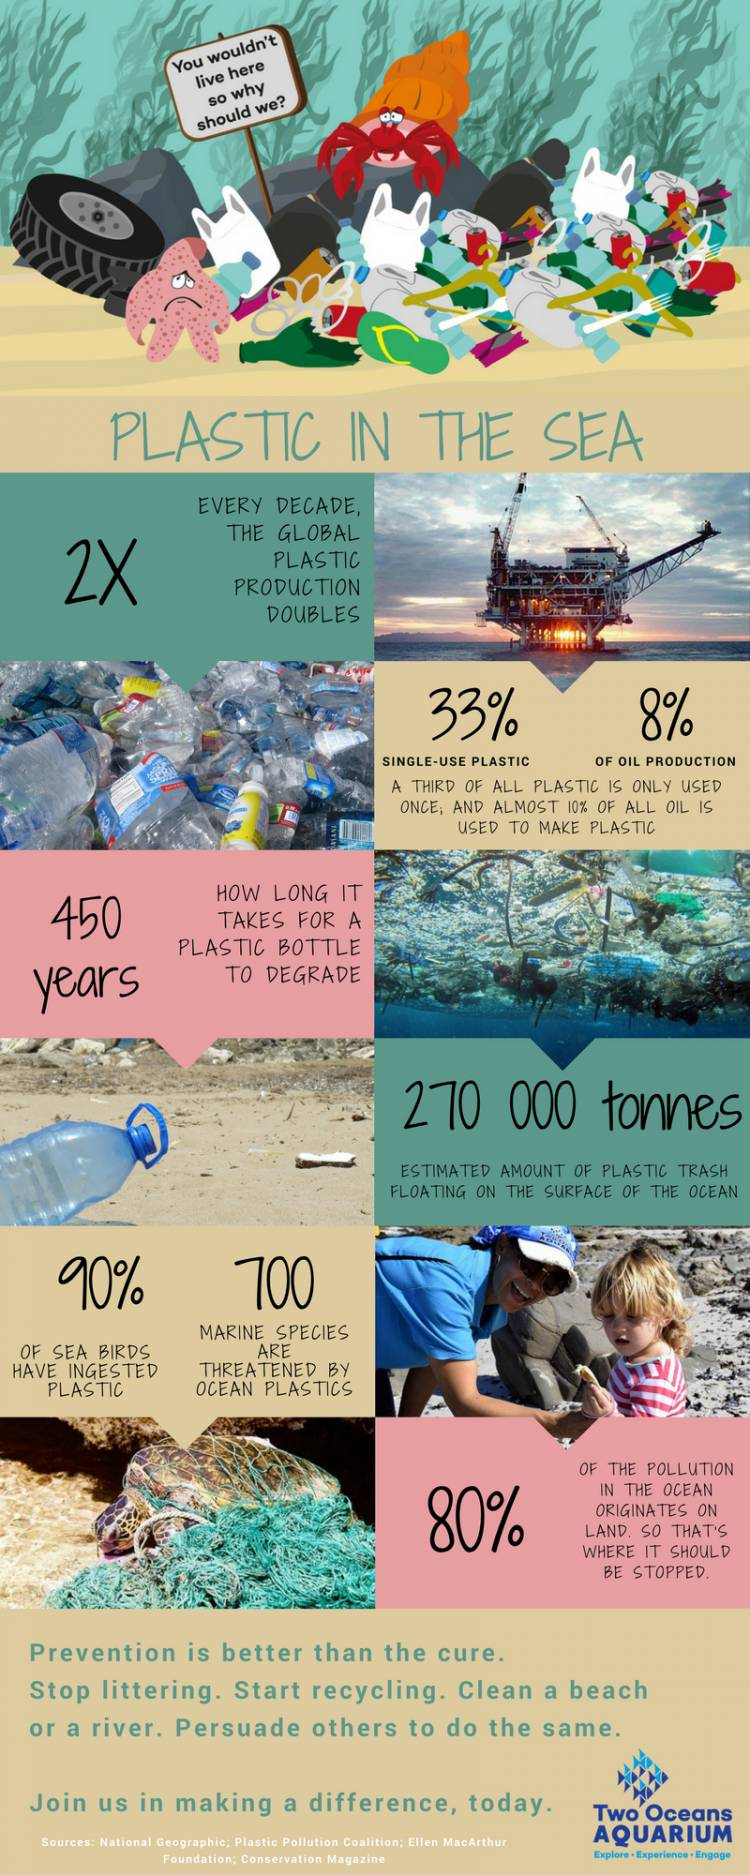 Pollution in our oceans informational poster